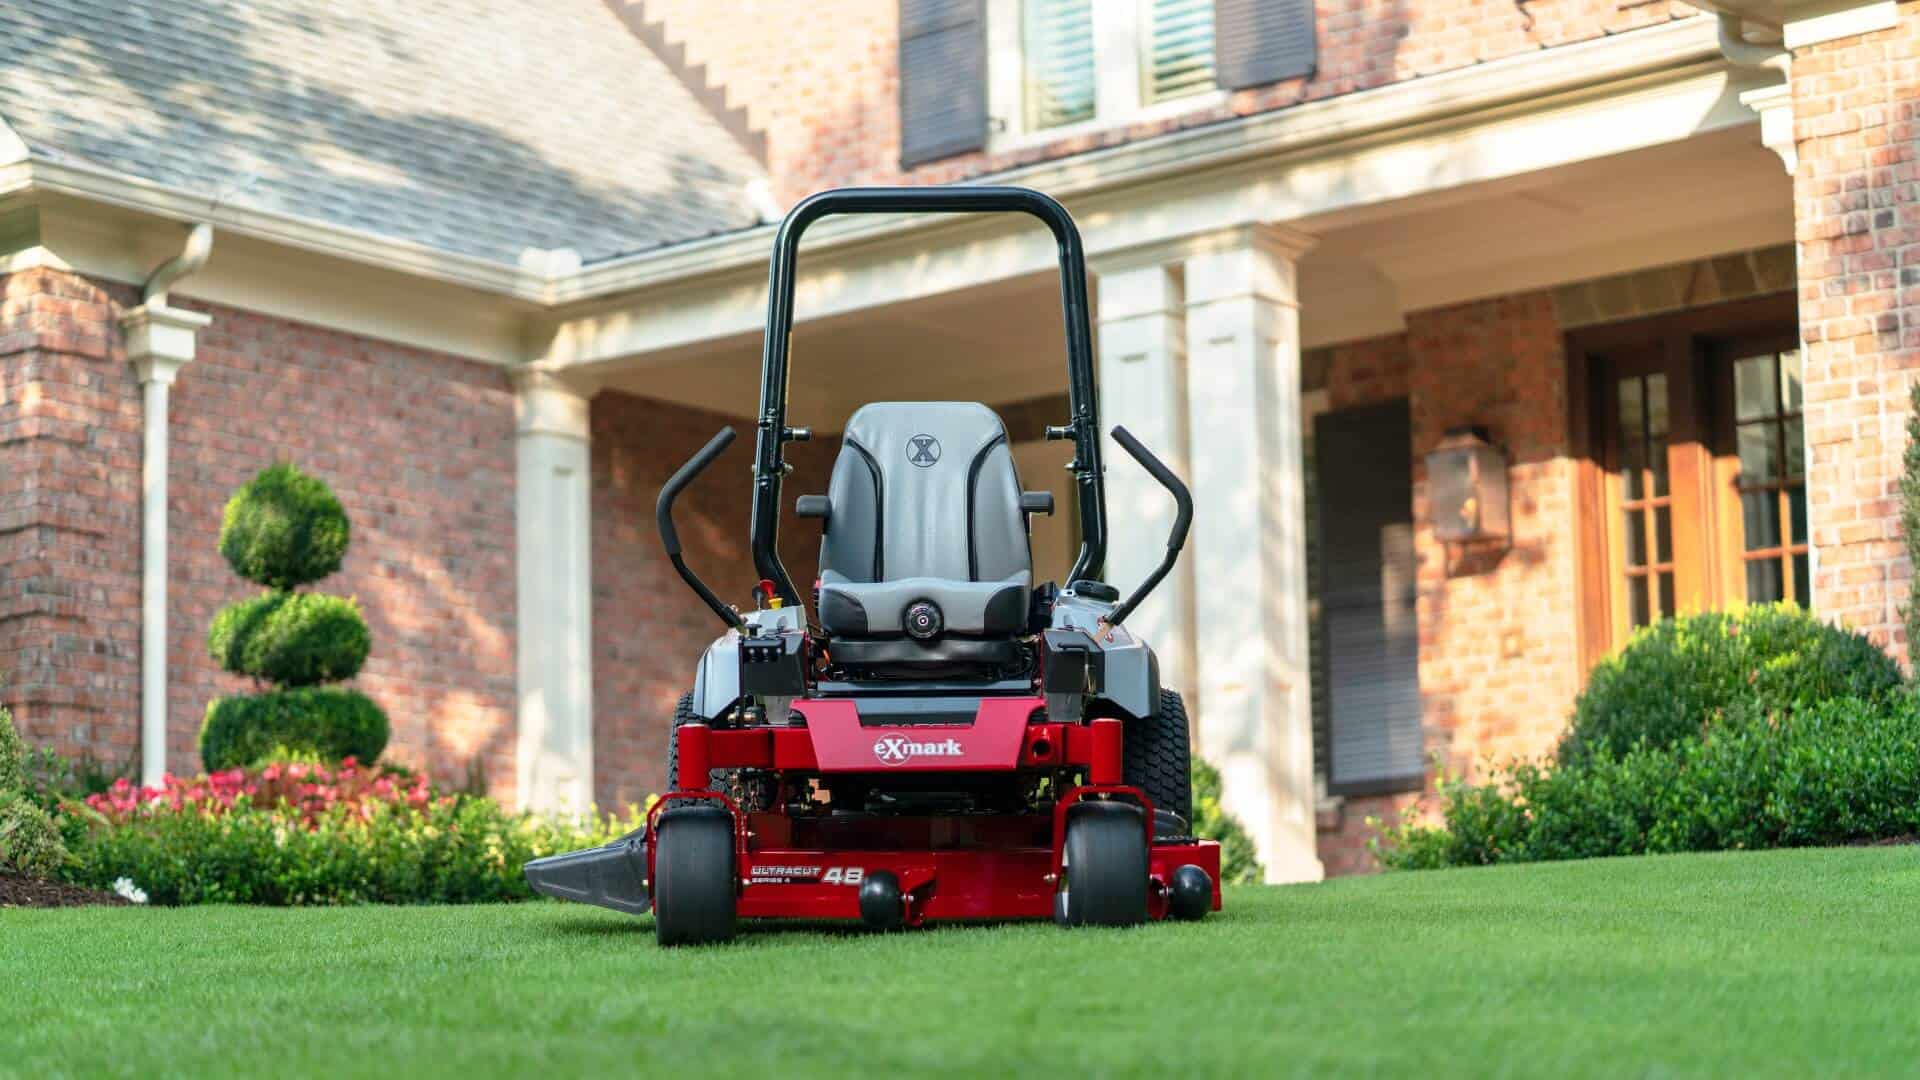 An Exmark mower ready to start mowing in the spring